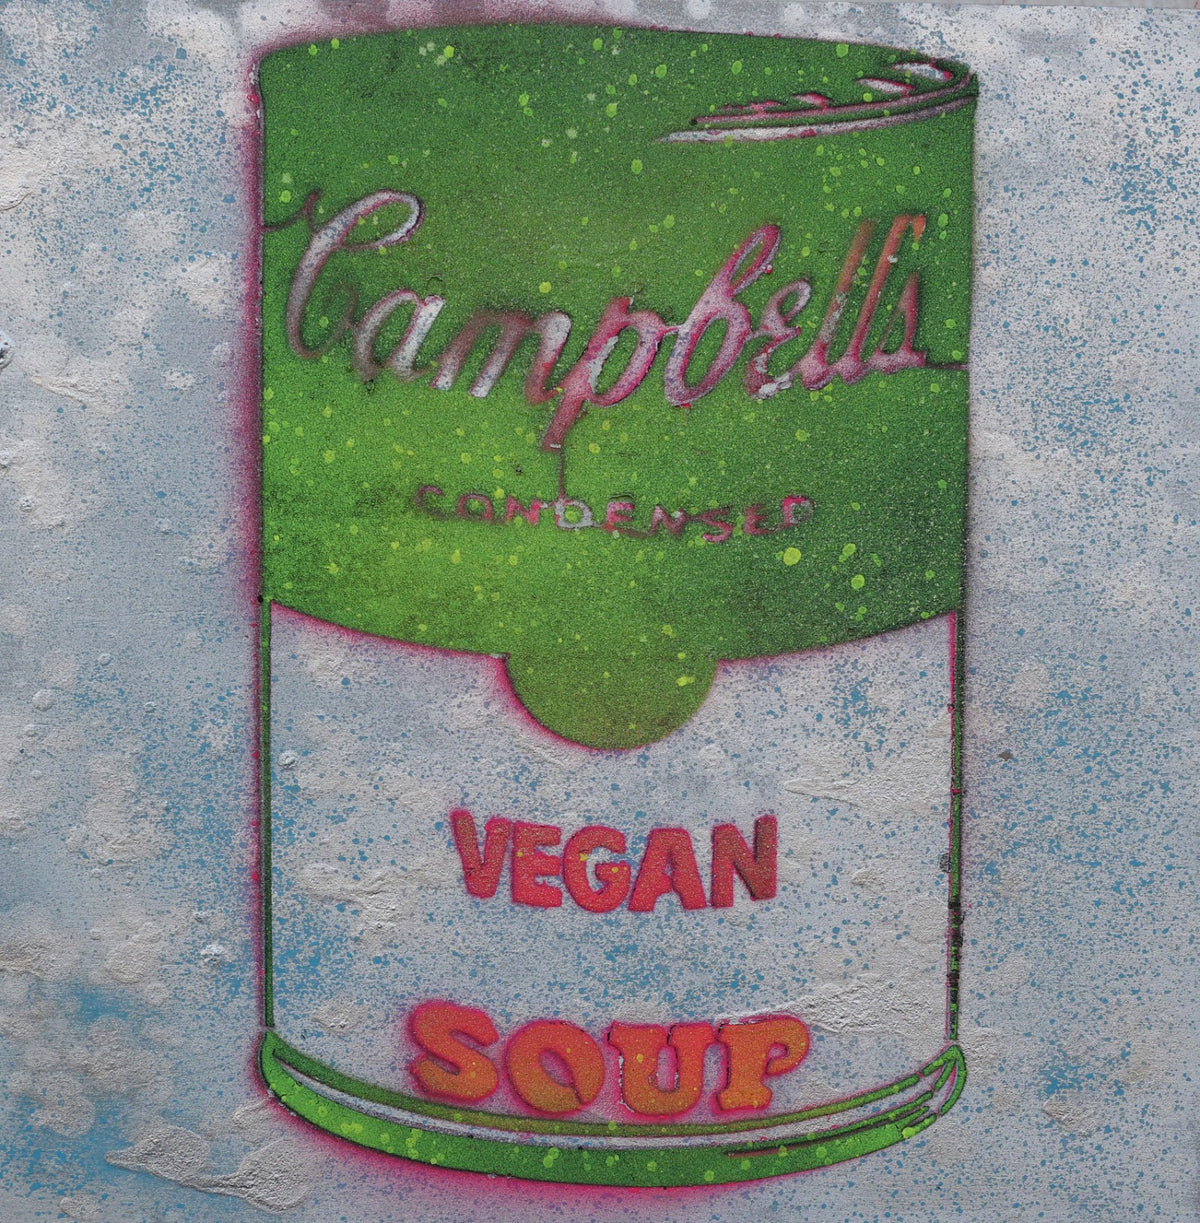 Vegan Soup Green, Blue & Pink Graffiti on Wood and Resin 12x12